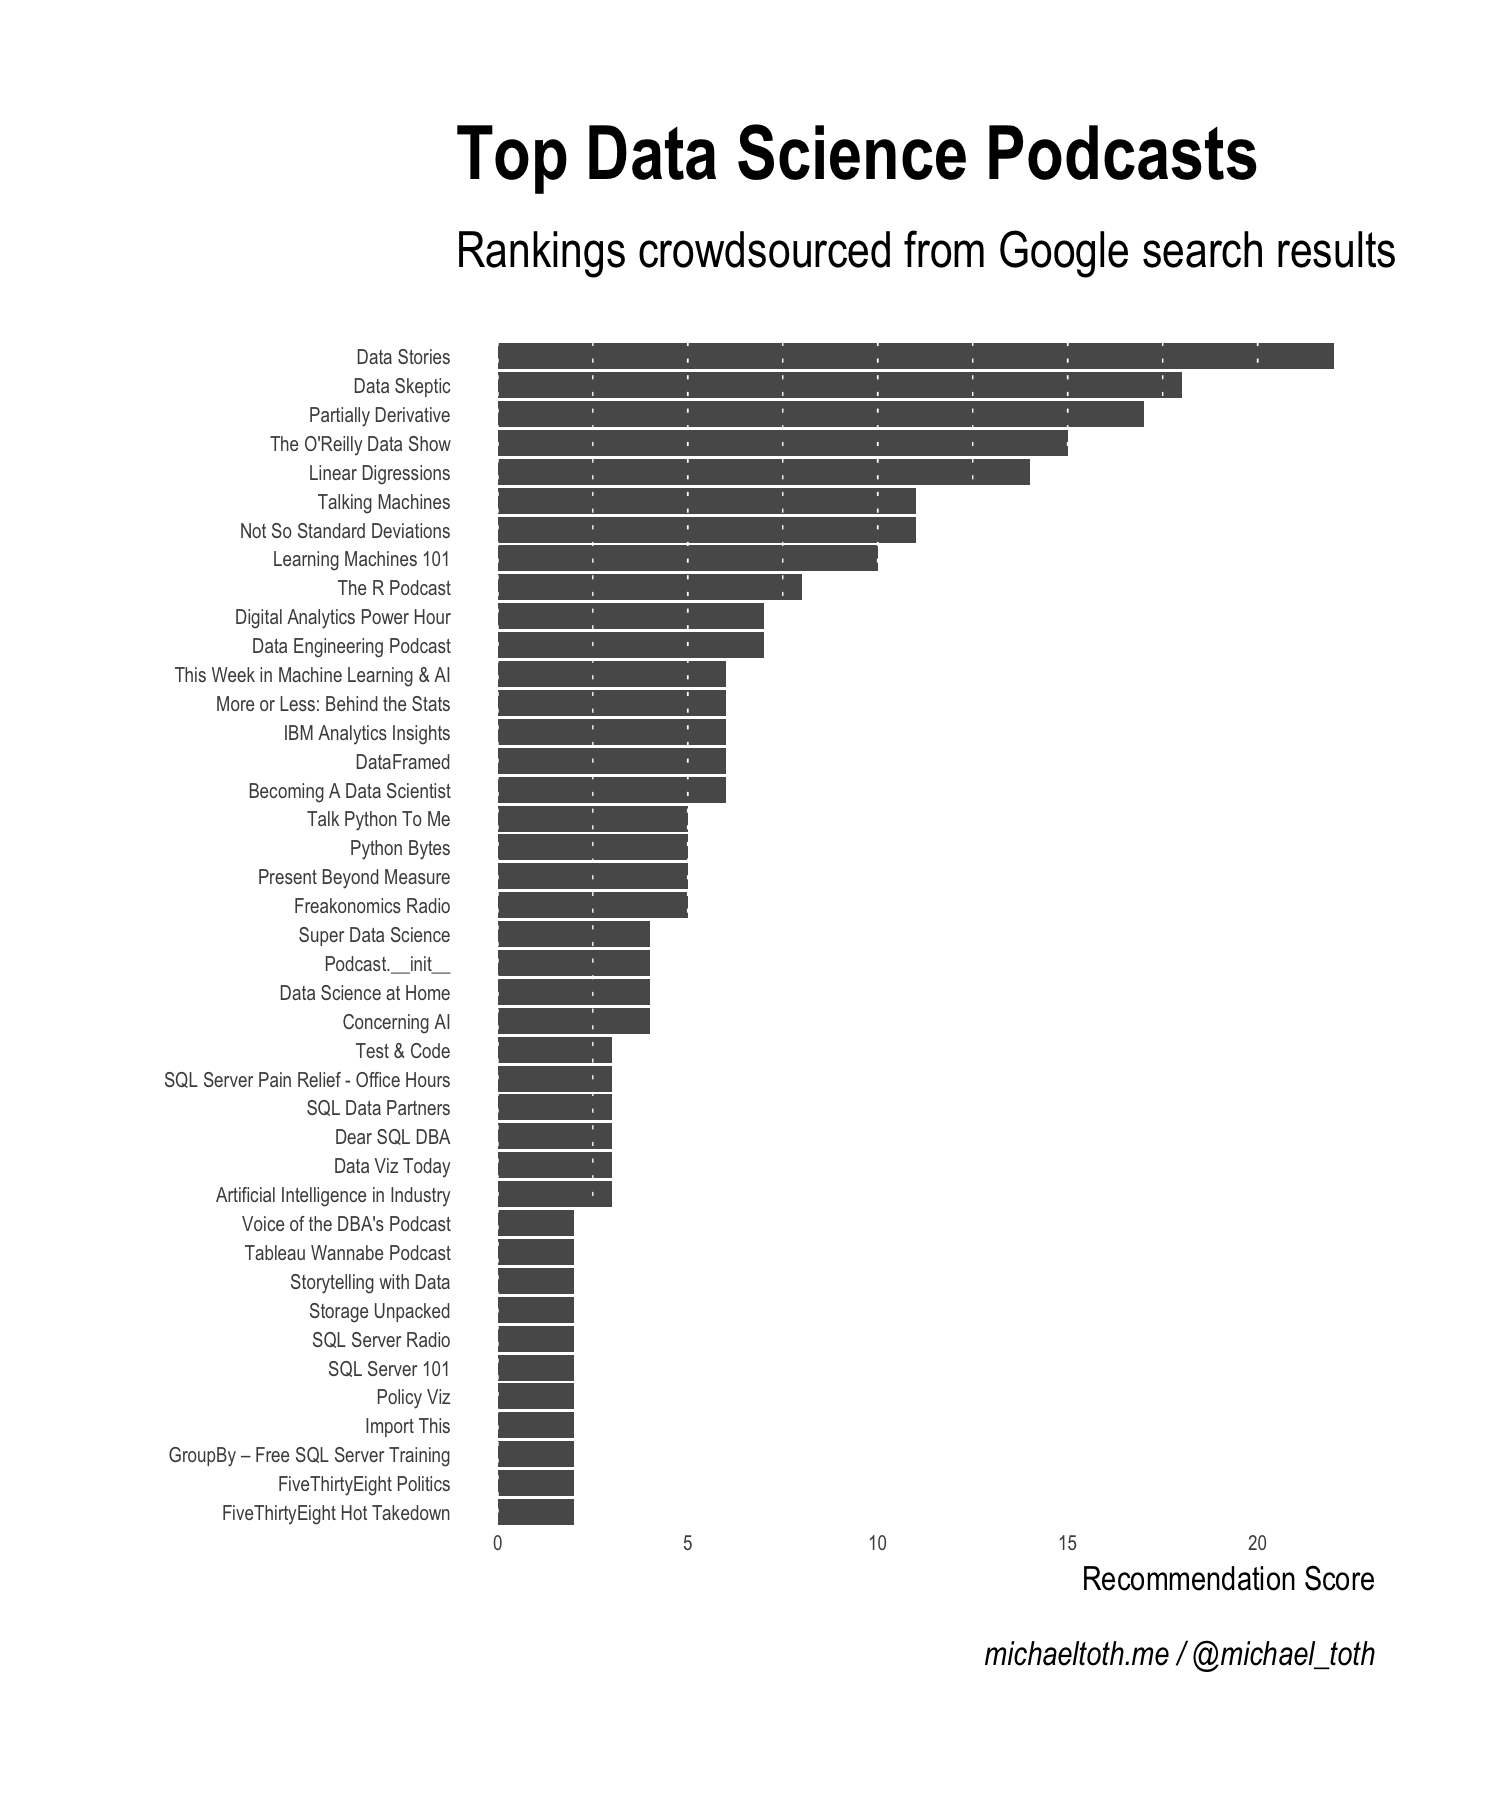 Generating the Ultimate List of 41 Data Science Podcasts by Crowdsourcing Google Results